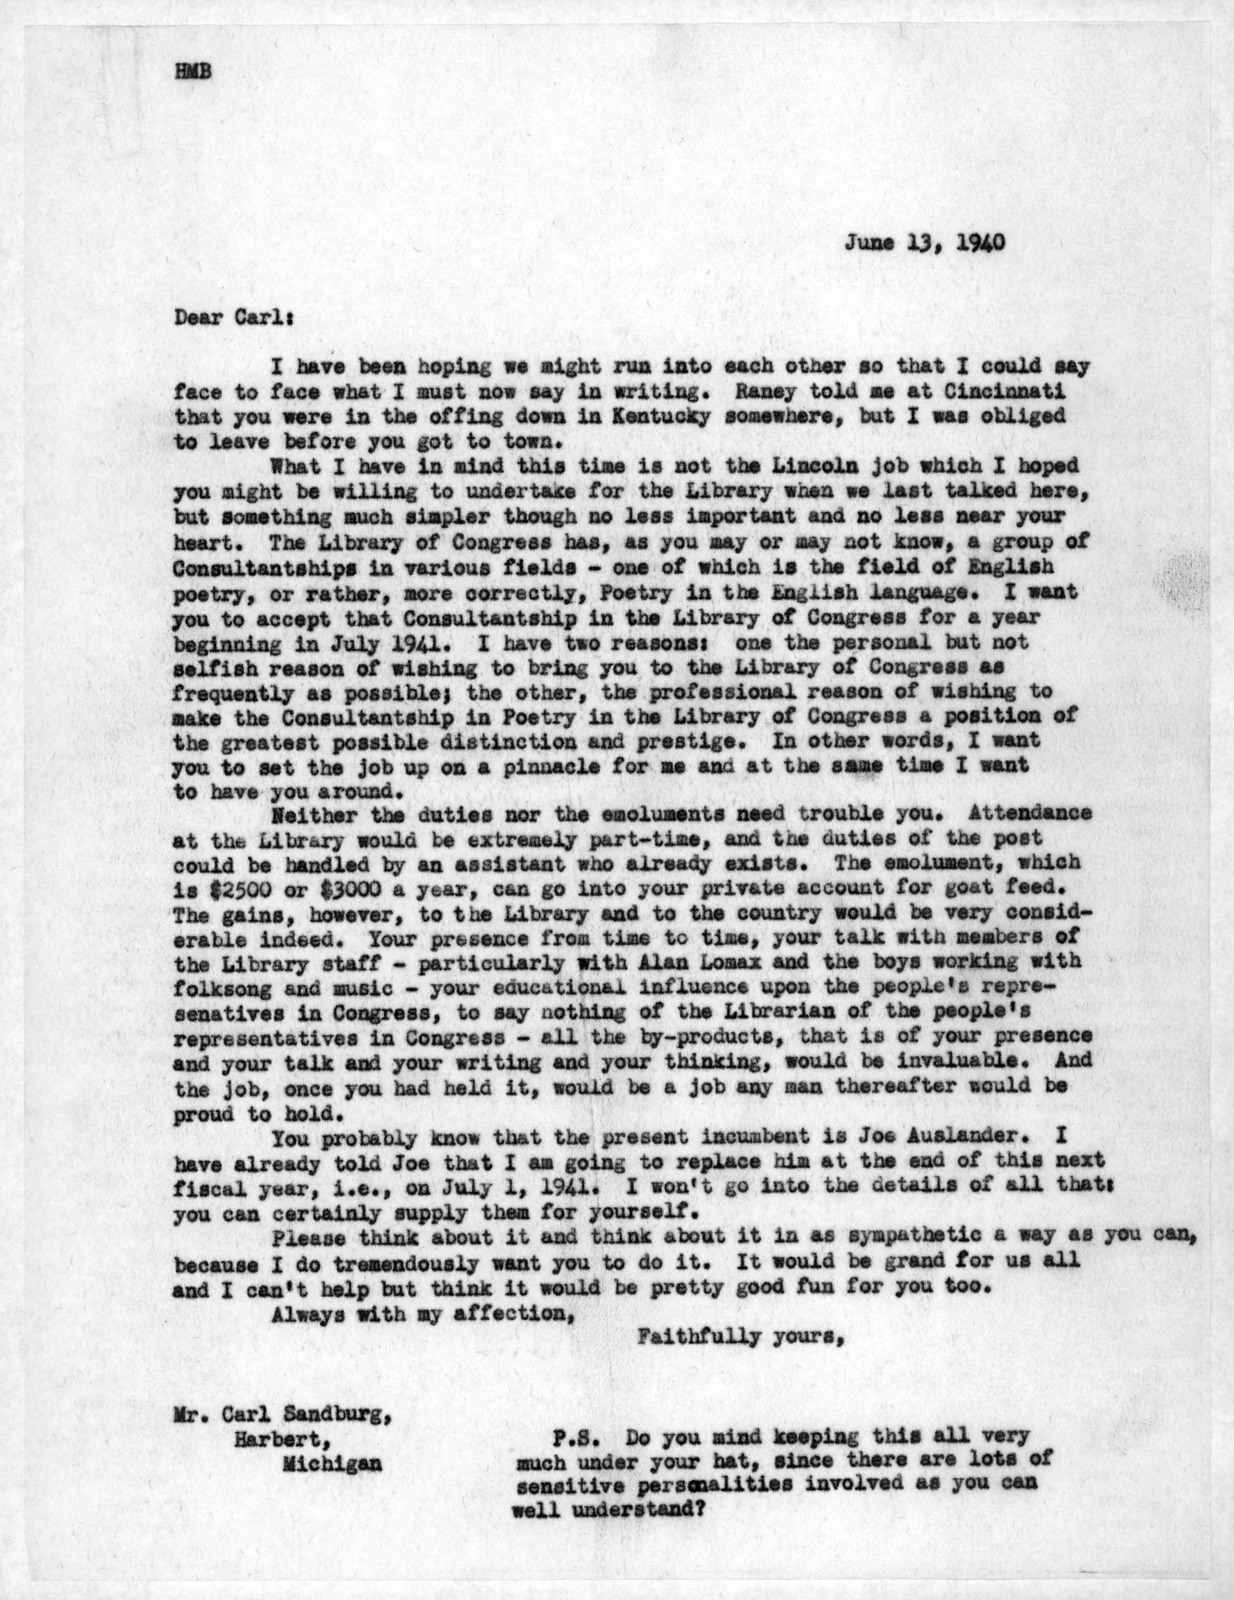 Letter from Archibald MacLeish to Carl Sandburg, June 13, 1940